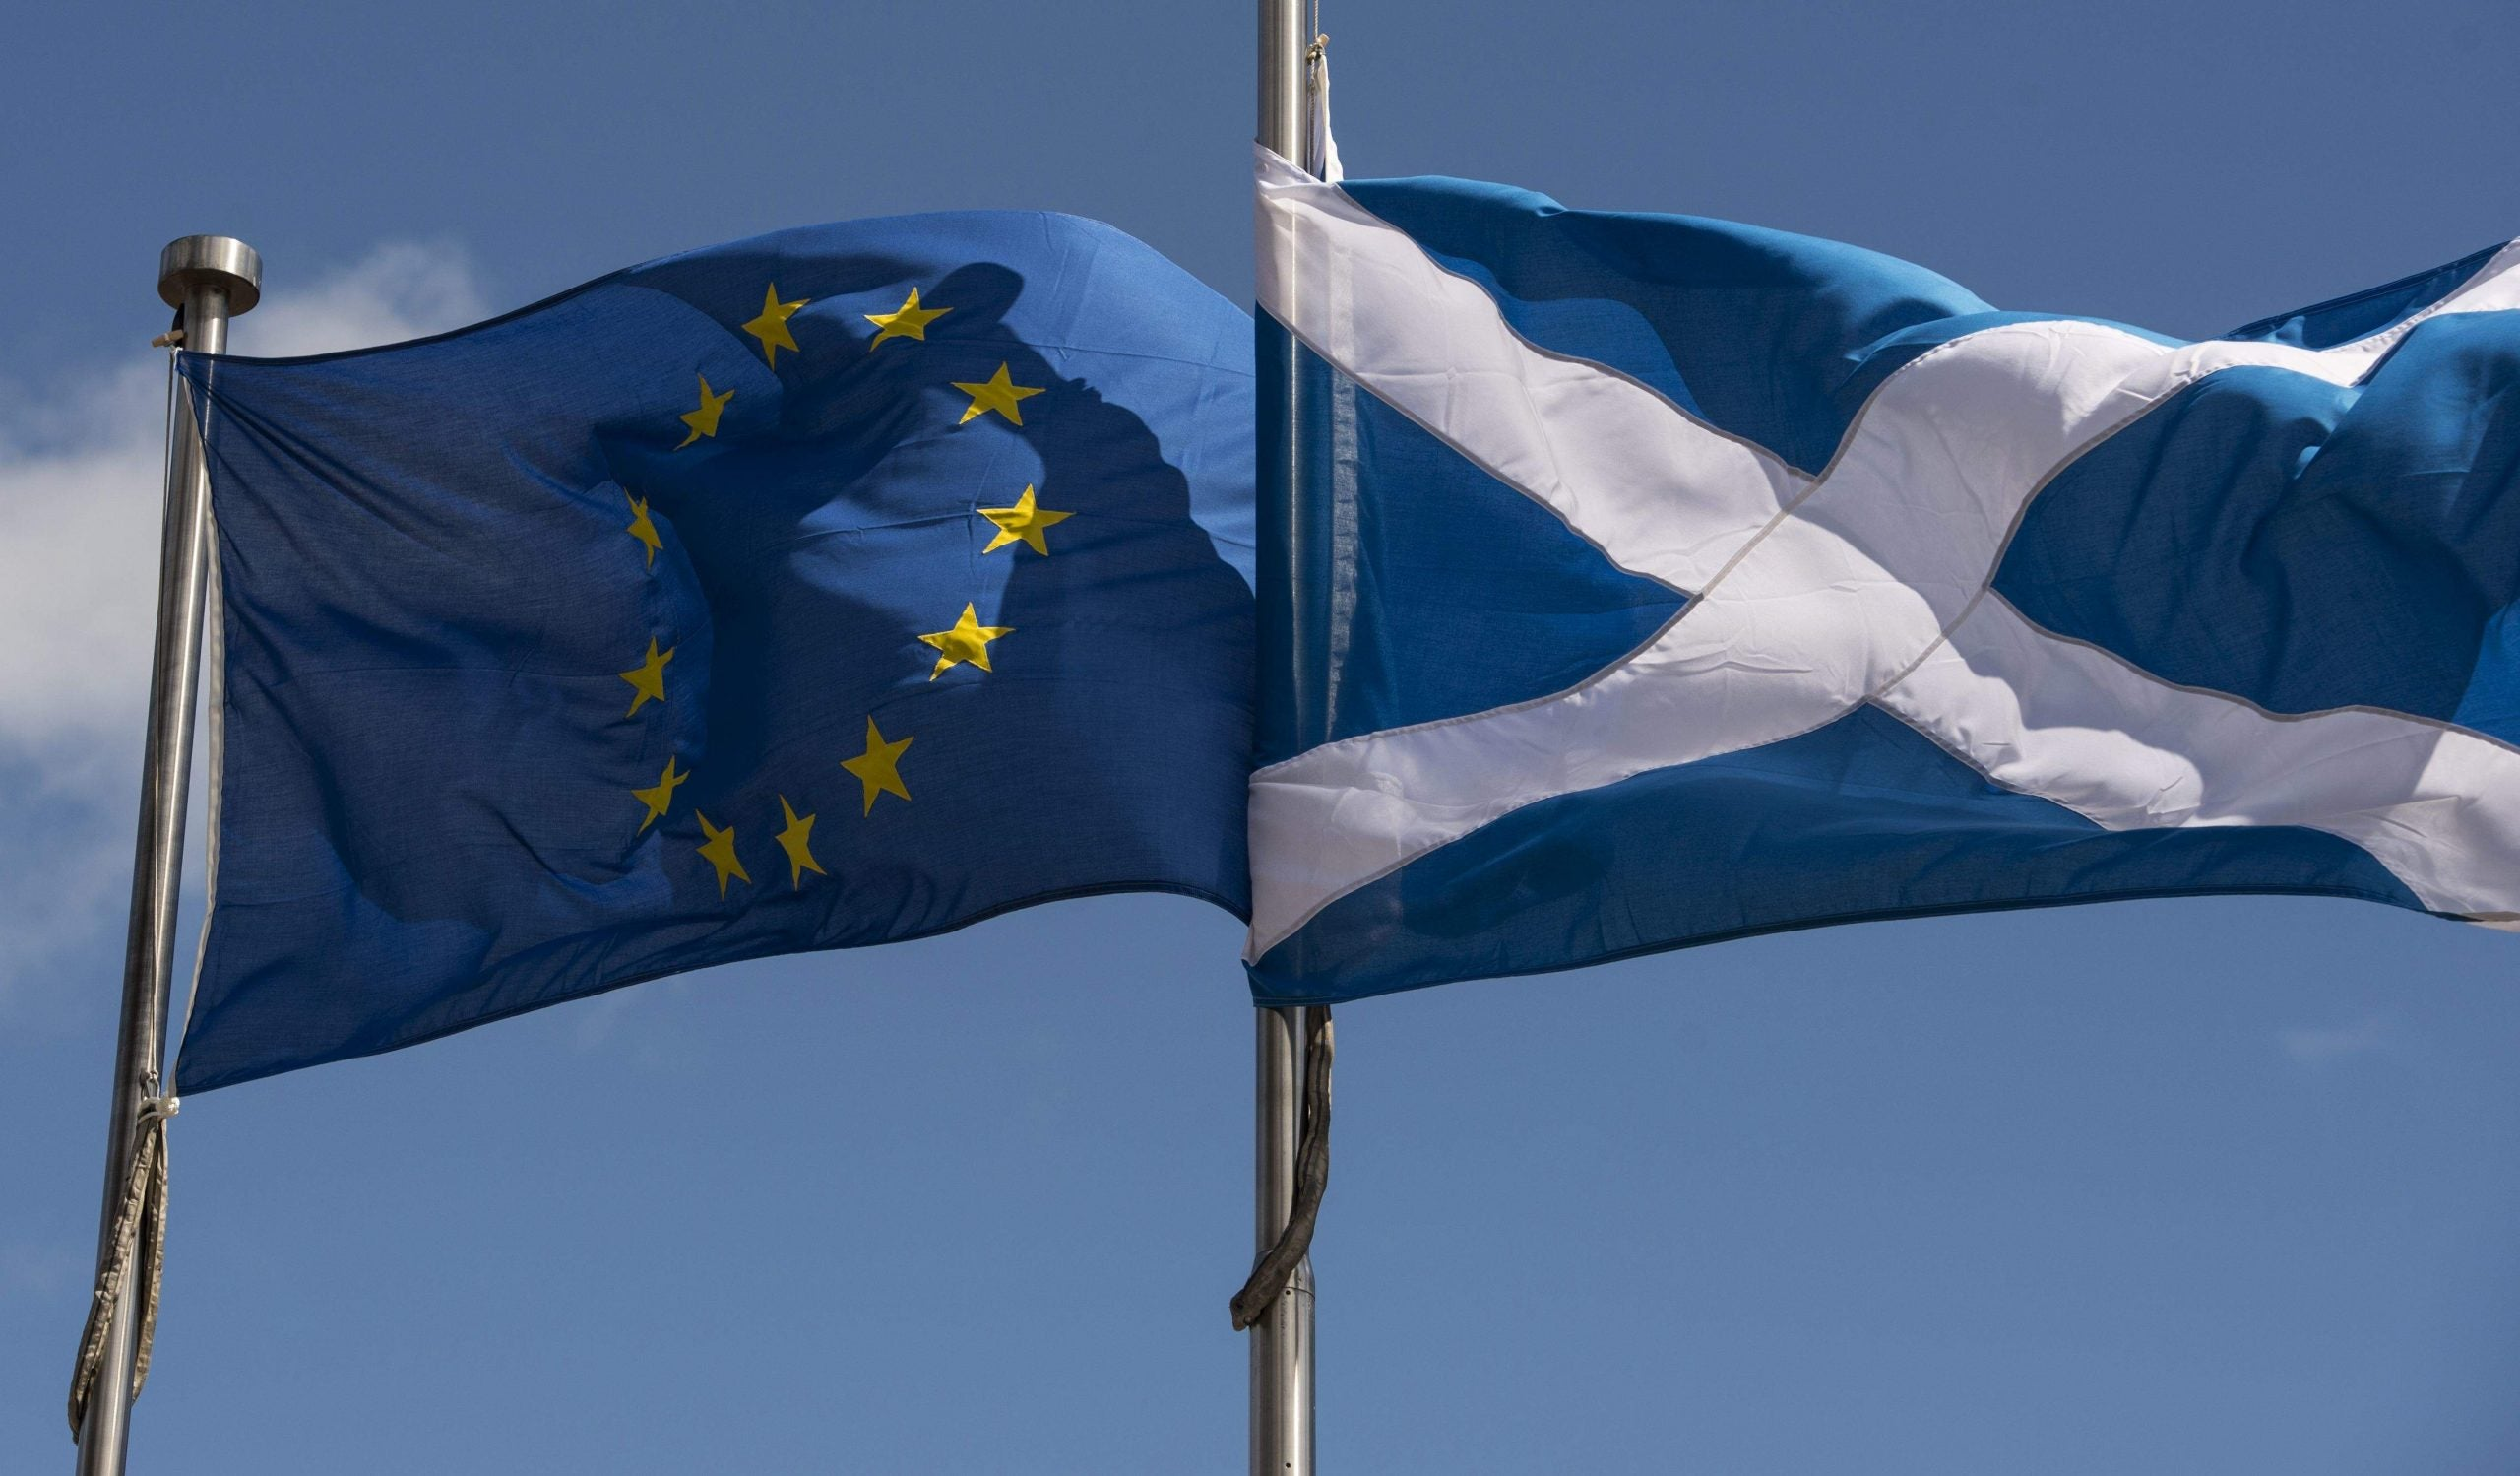 Winning Scottish independence will be even harder than before - but it may be the only choice